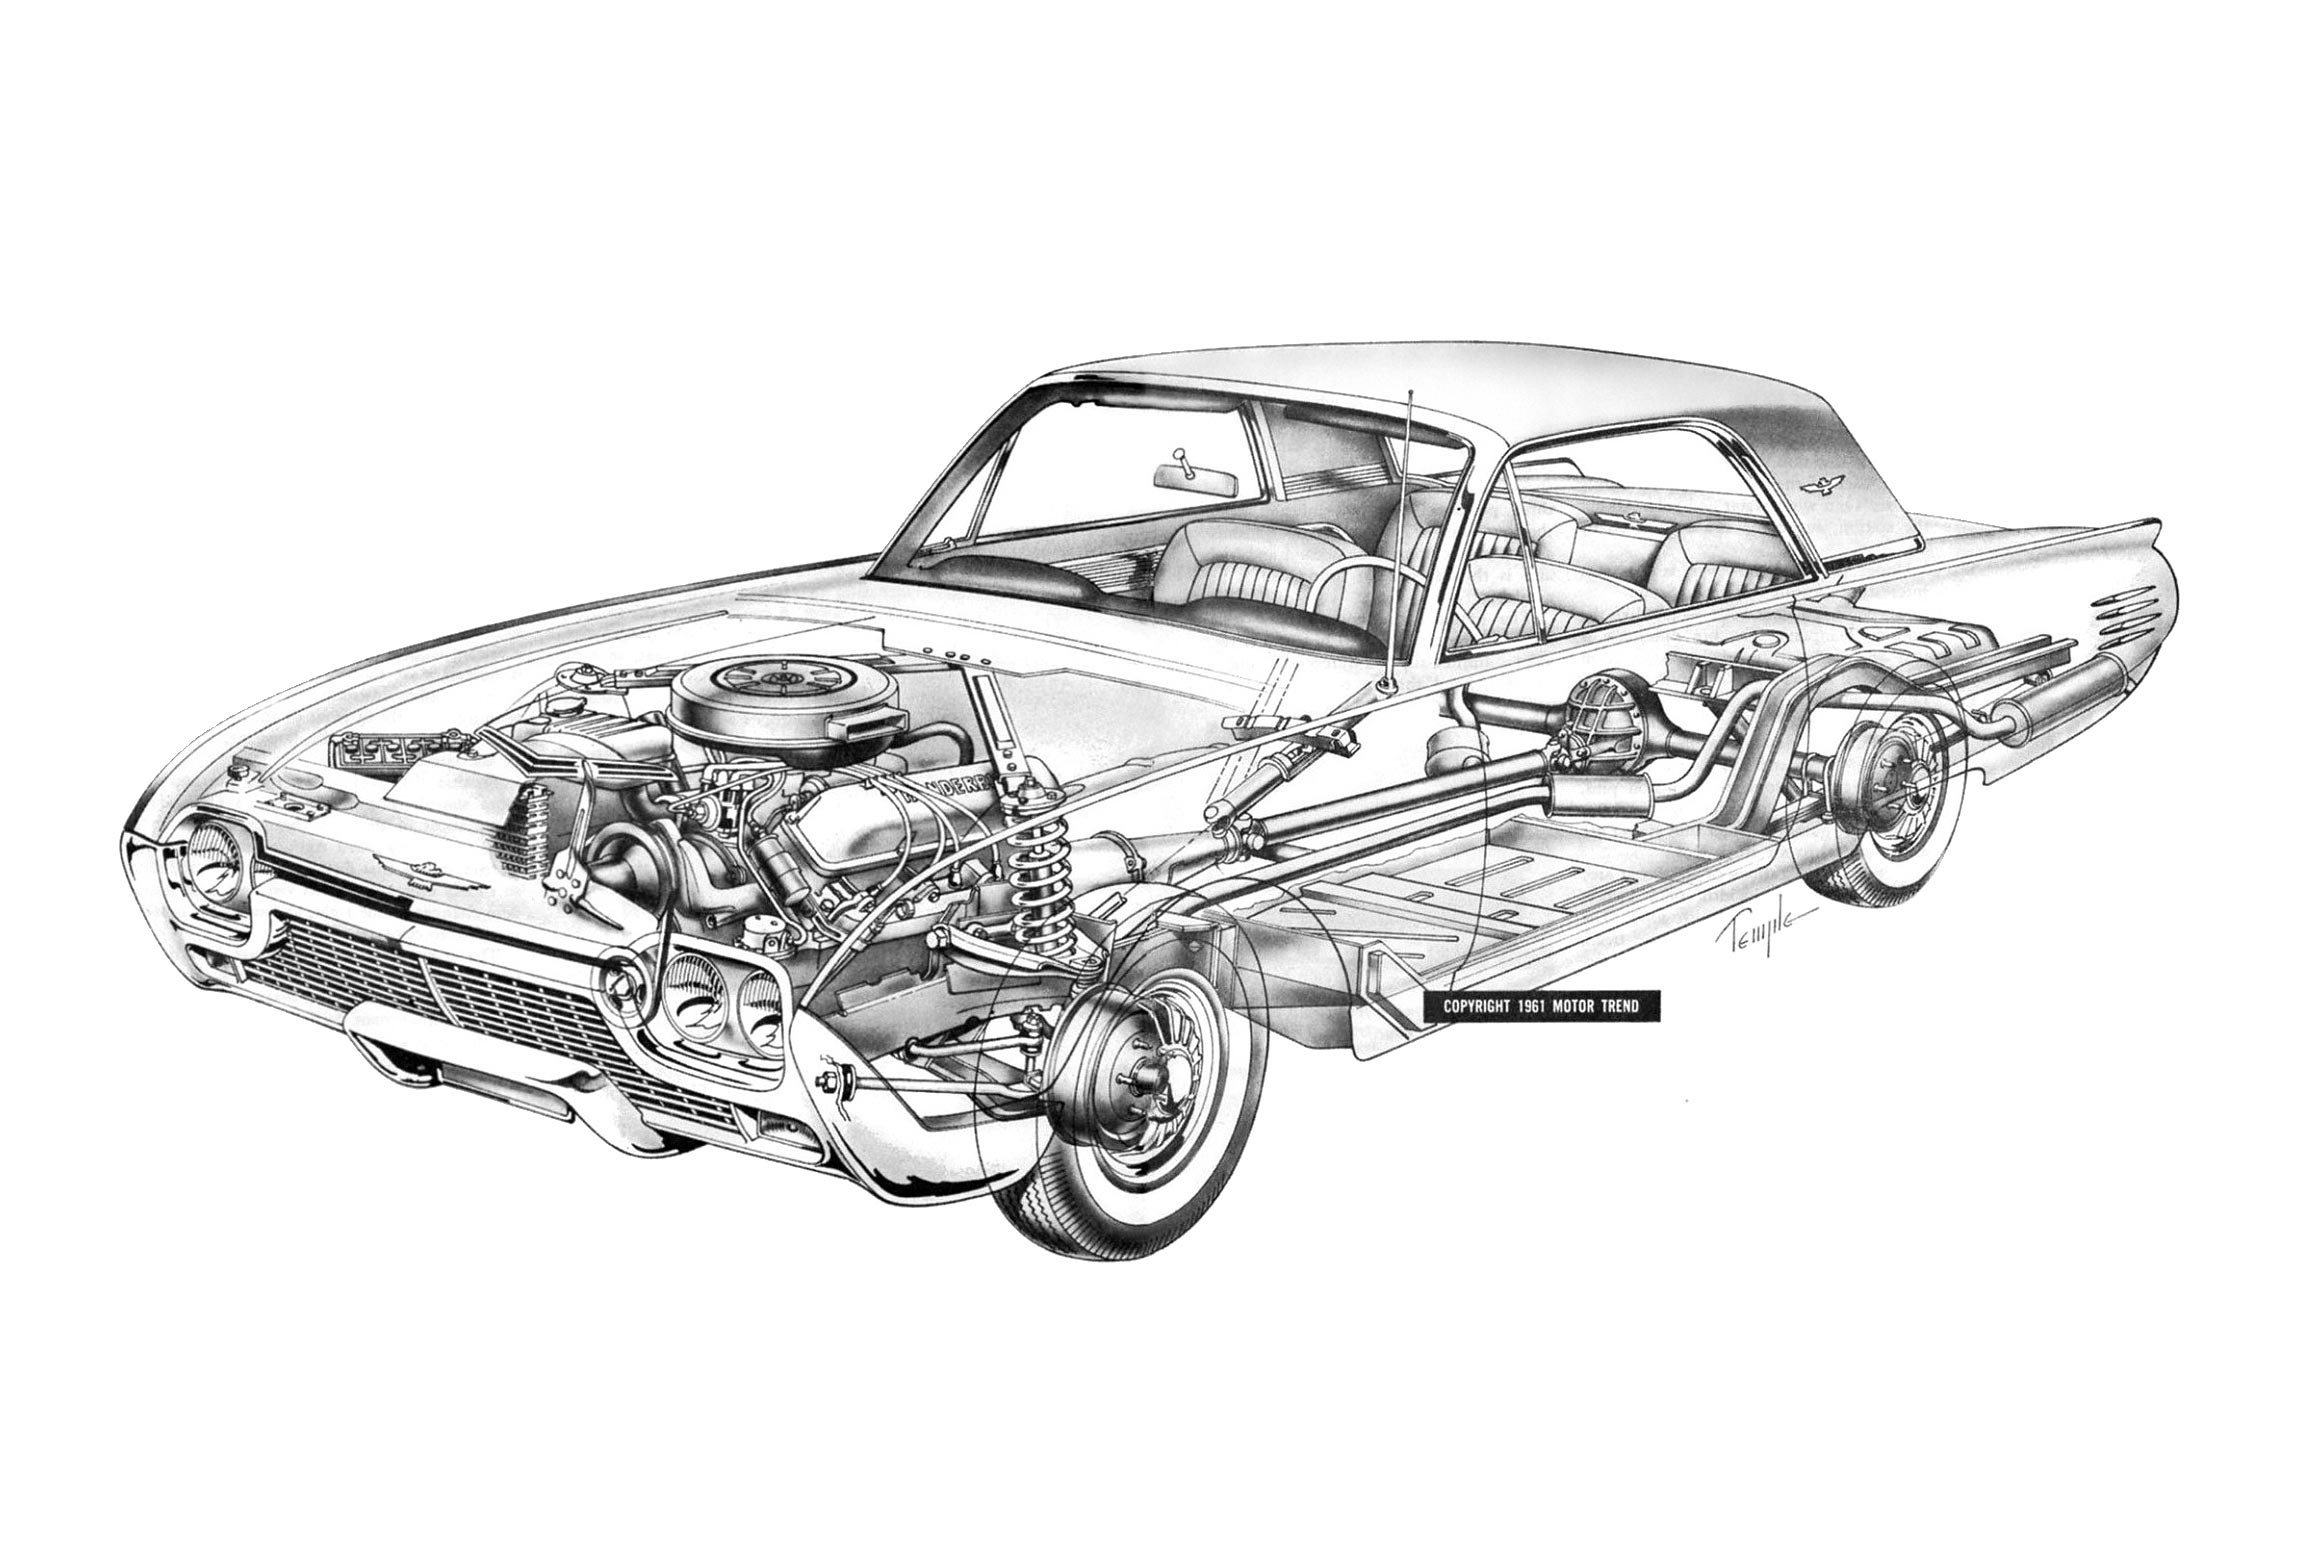 Ford Thunderbird cutaway drawing